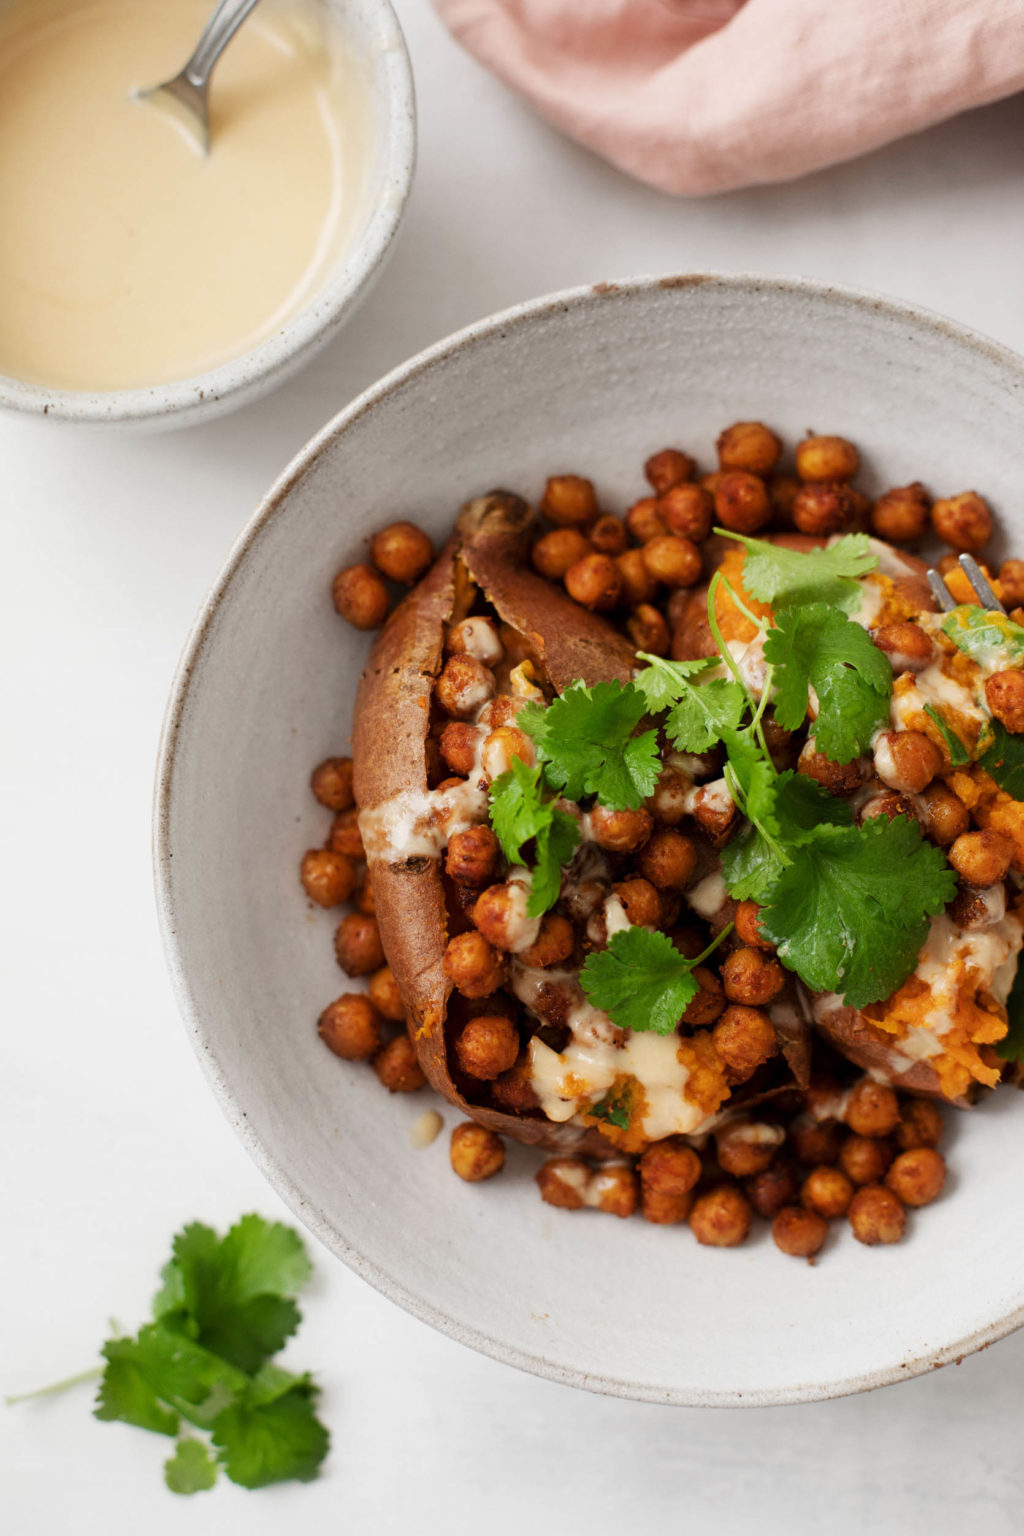 A zoomed in image of a Tandoori spiced sweet potato, stuffed with chickpeas, fresh cilantro, and a drizzle of tahini lime sauce.